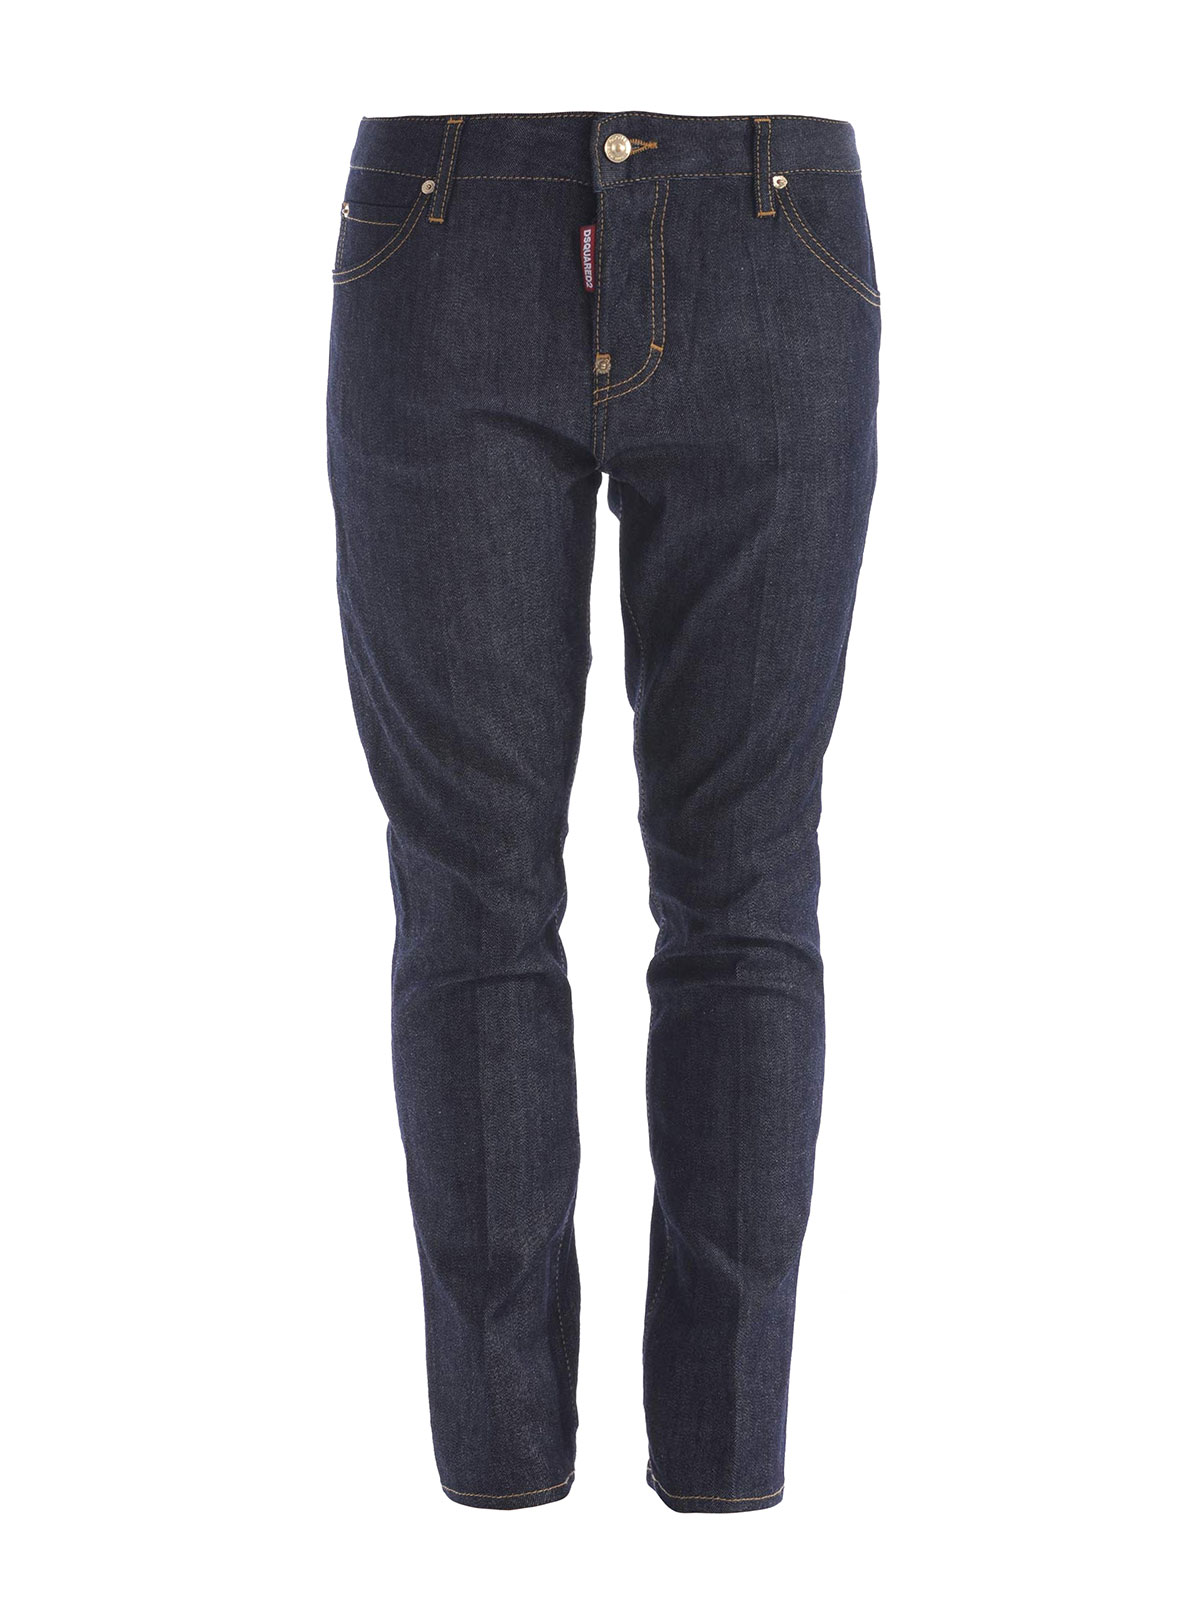 00 Long Jeans ($ - $): 30 of items - Shop 00 Long Jeans from ALL your favorite stores & find HUGE SAVINGS up to 80% off 00 Long Jeans, including GREAT DEALS like American Eagle Outfitters Jeans | 00 Long American Eagle Boot Cut Jeans | Color: Blue | Size: 00 ($).